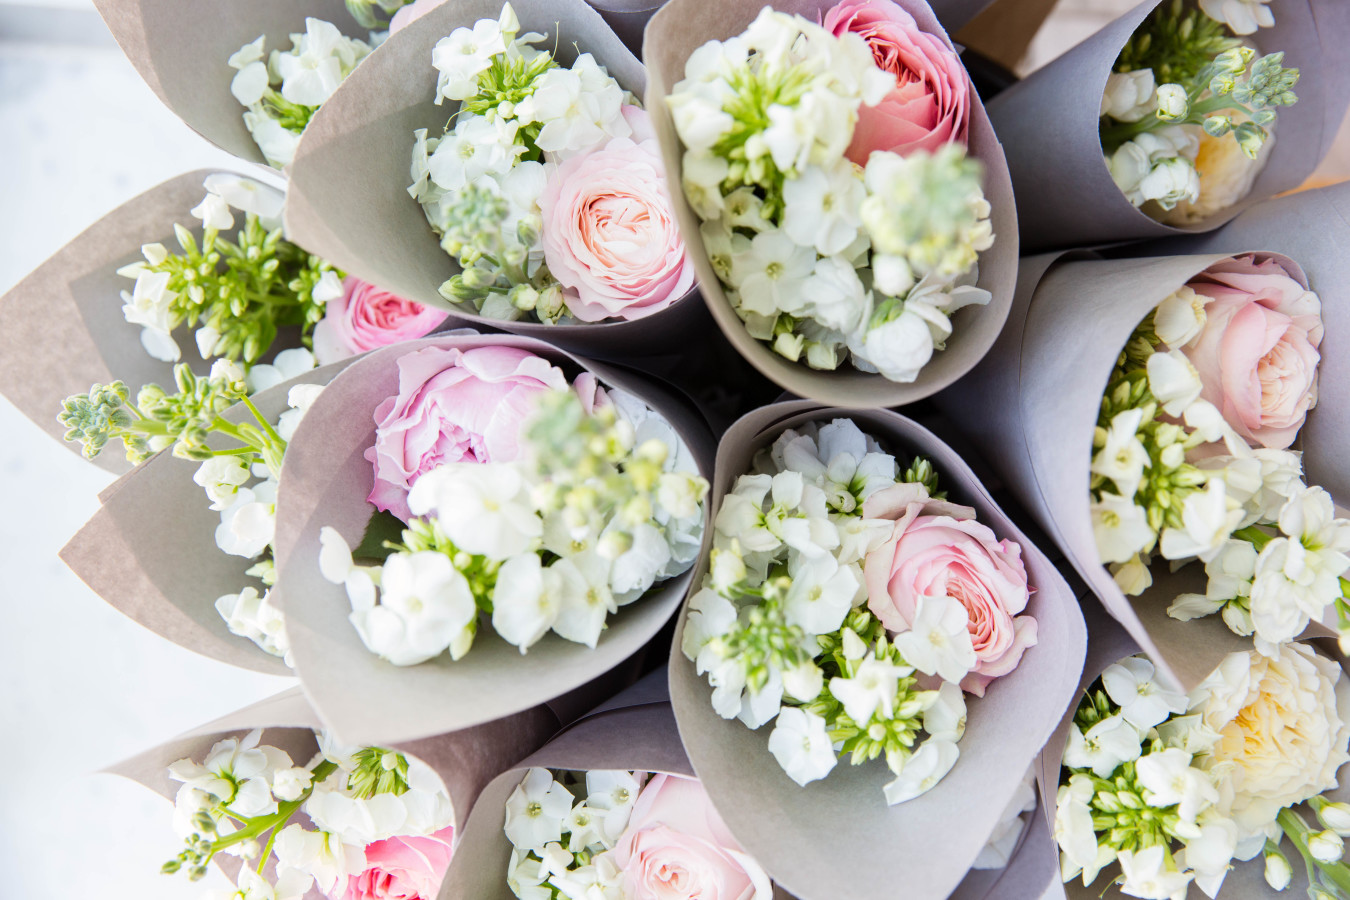 pink-white-bridal-shower-flowers http://itgirlweddings.com/tips-for-creating-a-photo-worthy-bridal-shower/